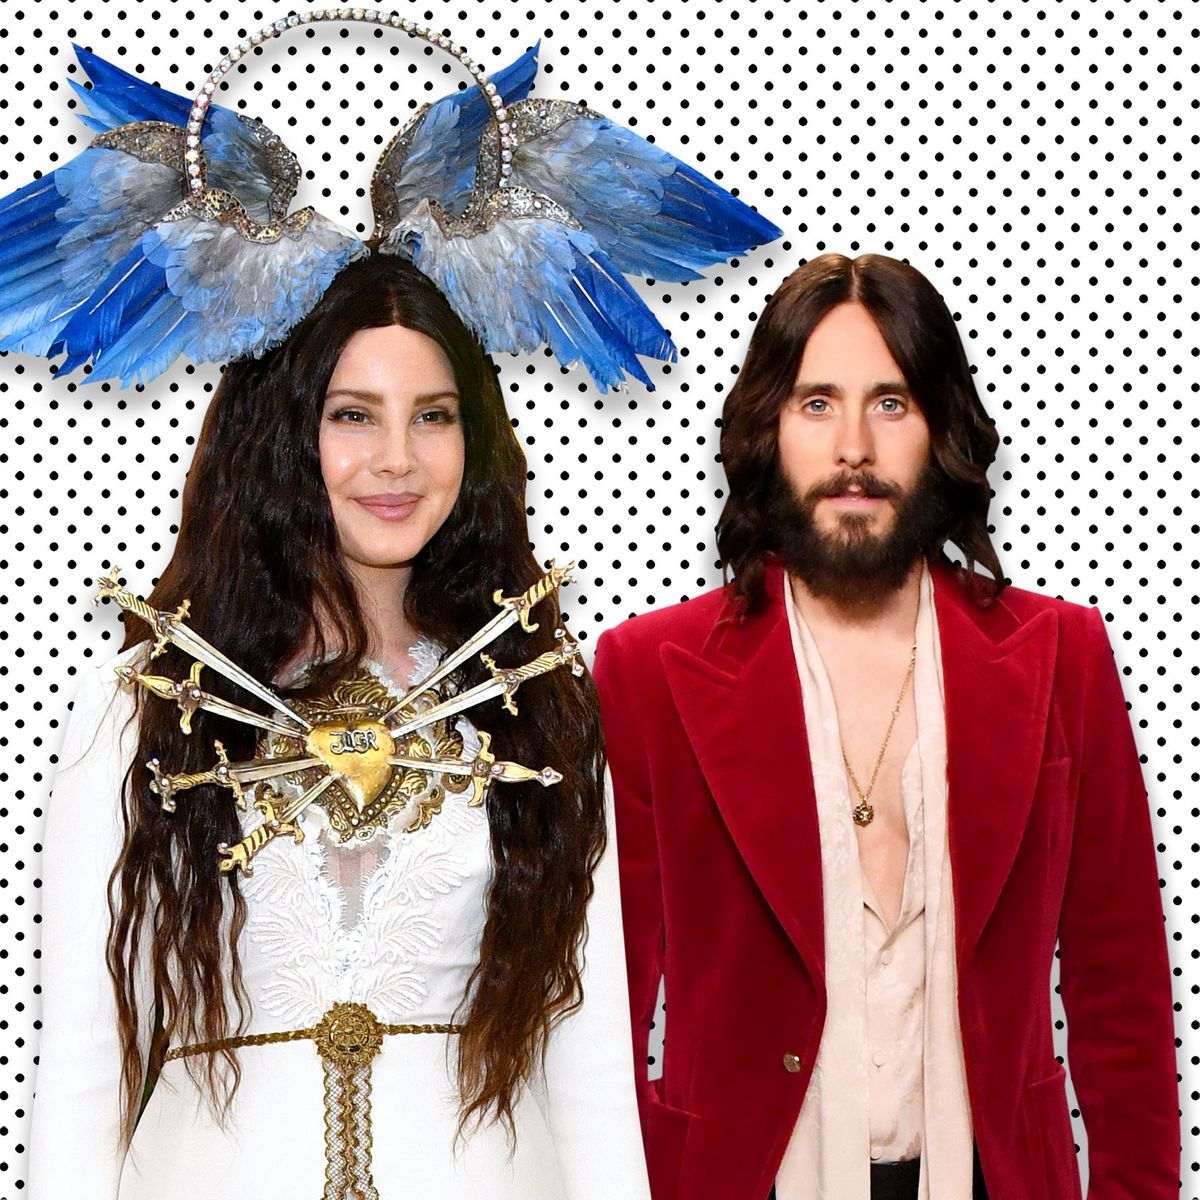 Lana Del Rey Jared Leto Are The New Faces Of Gucci Perfume